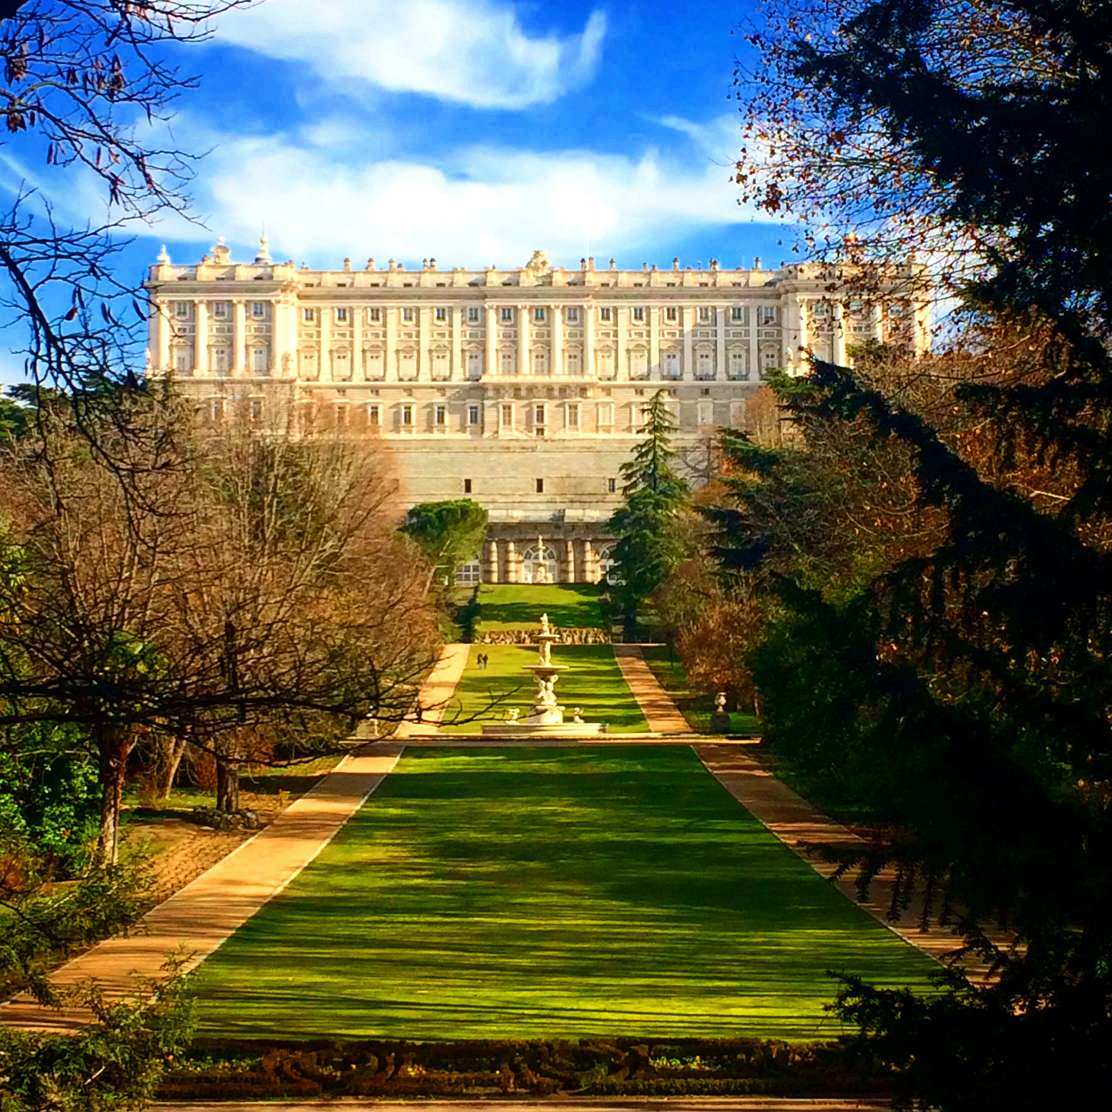 A picture of the royal palace of Madrid from Moro Park with a blue sky.